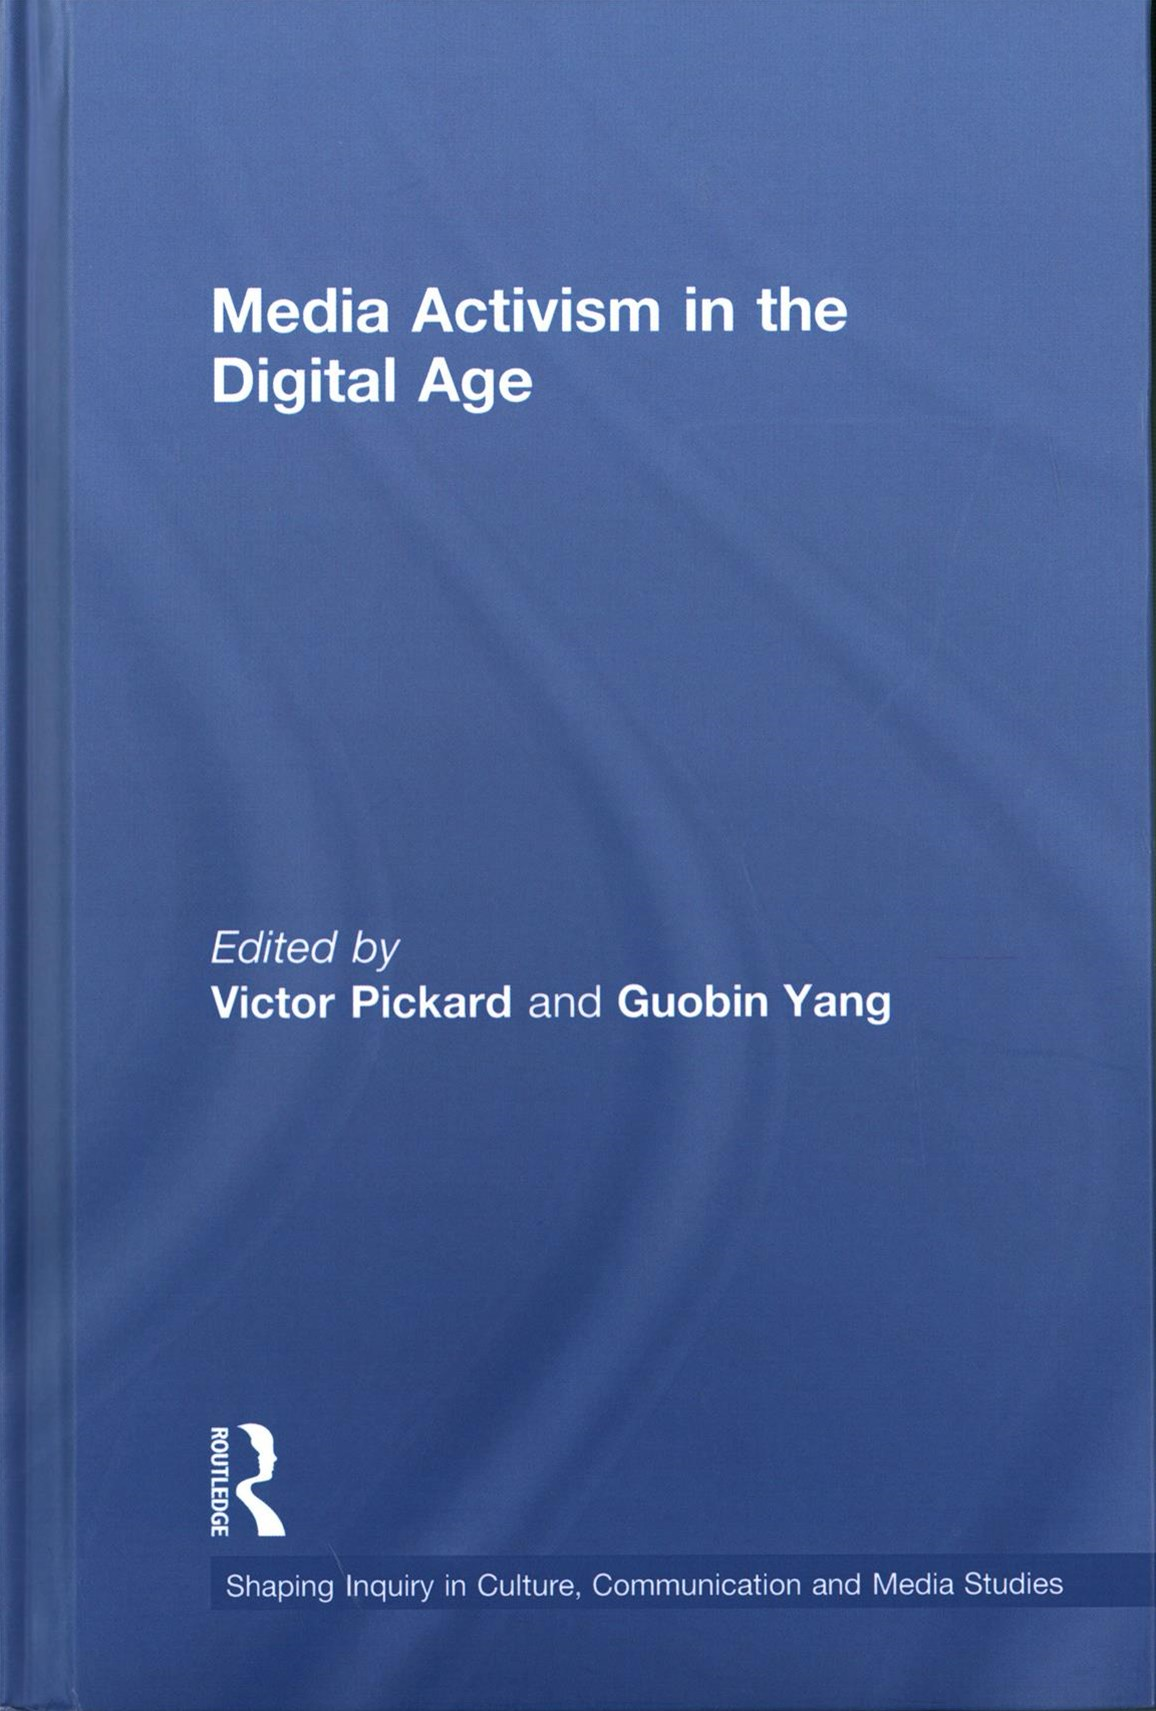 Media Activism in the Digital Age